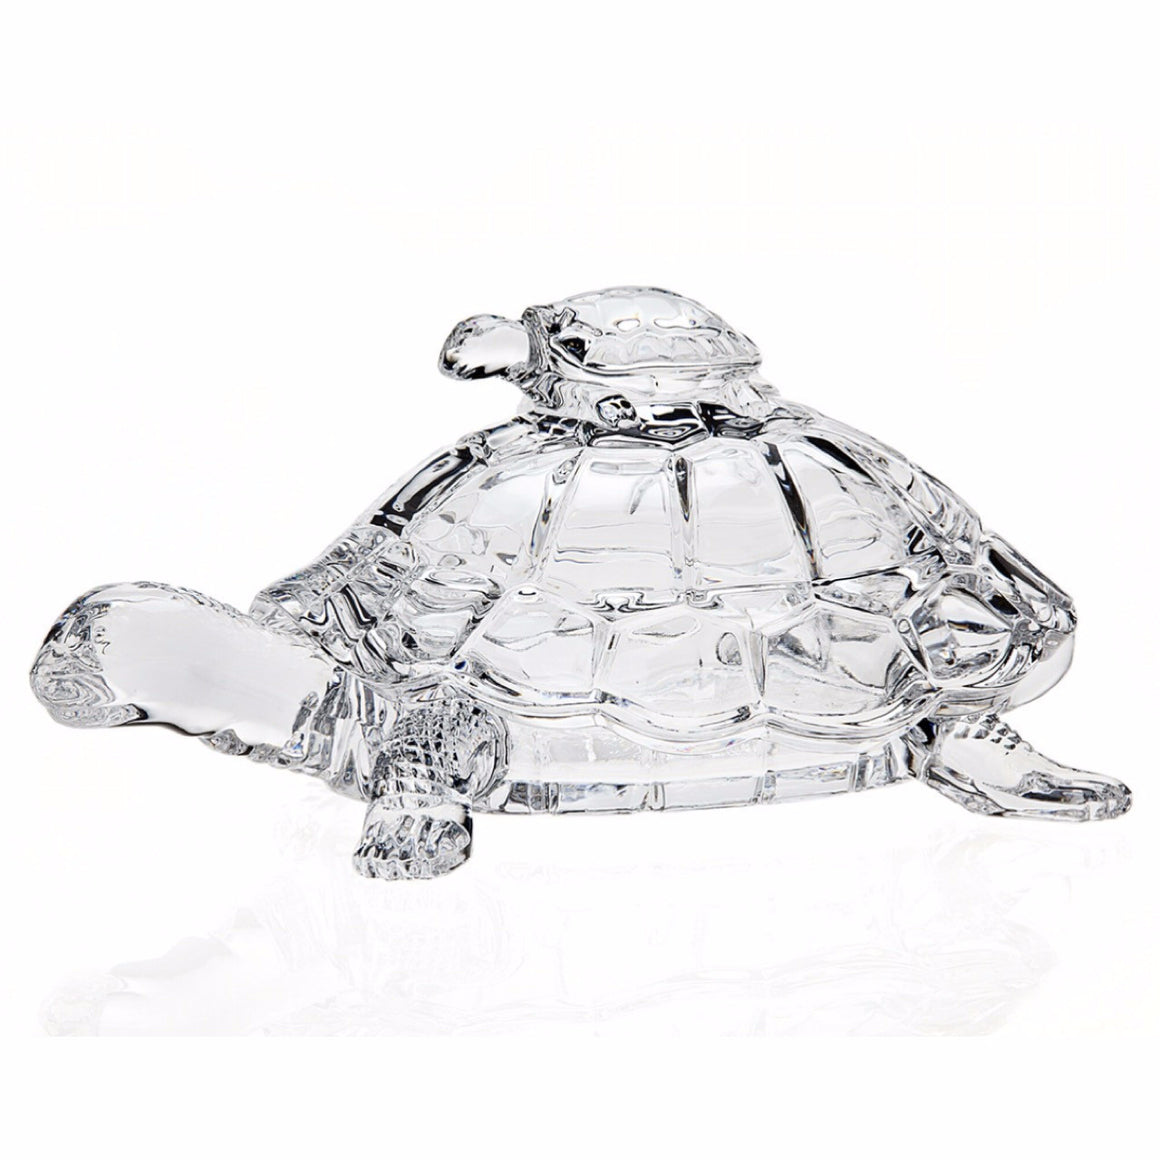 Big Crystal Turtles Candy Box - The Crystal Wonderland